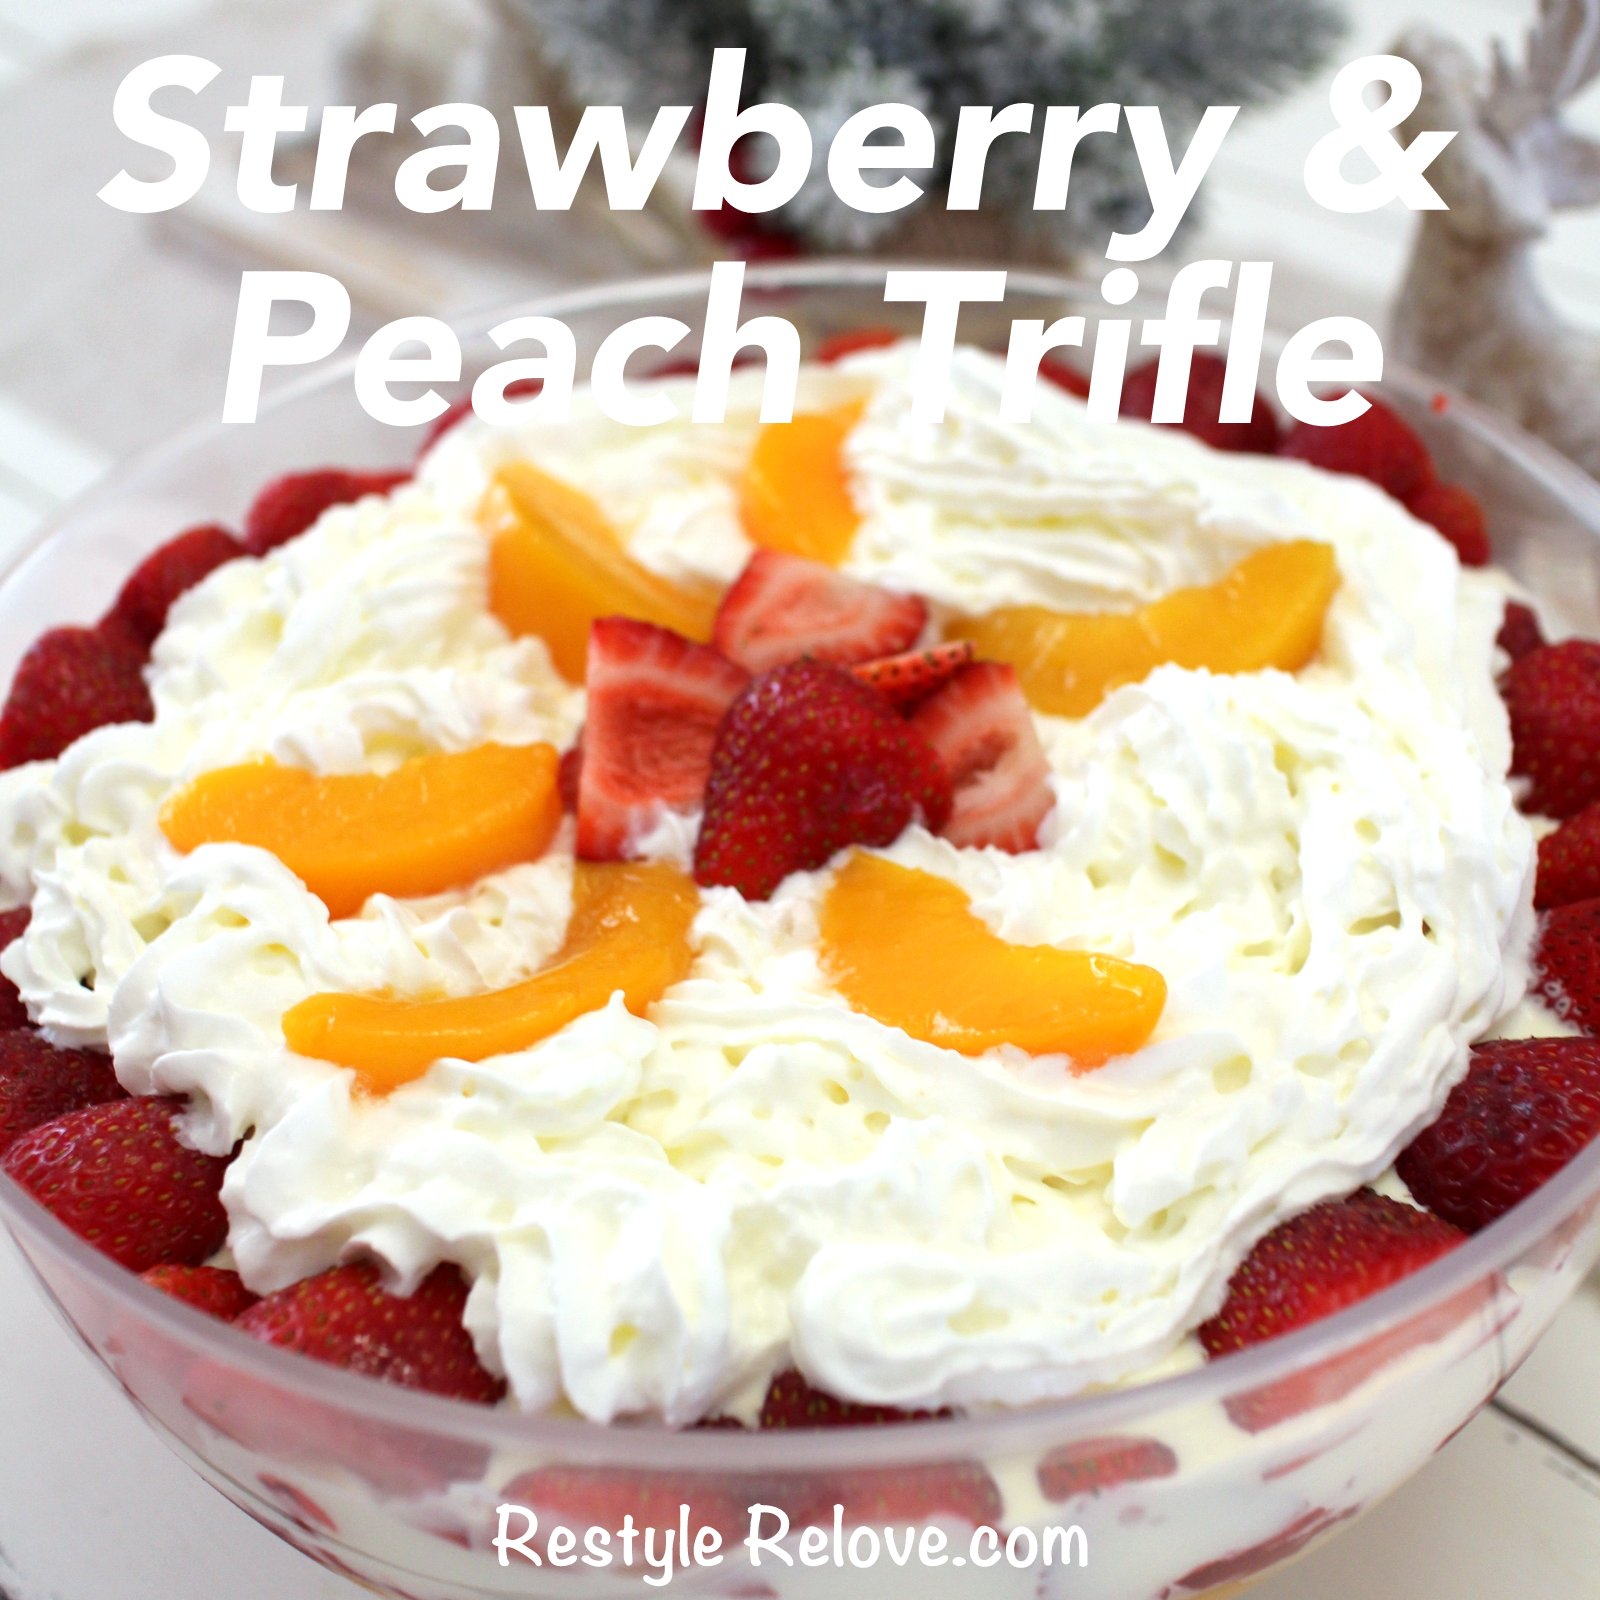 Strawberry and Peach Trifle